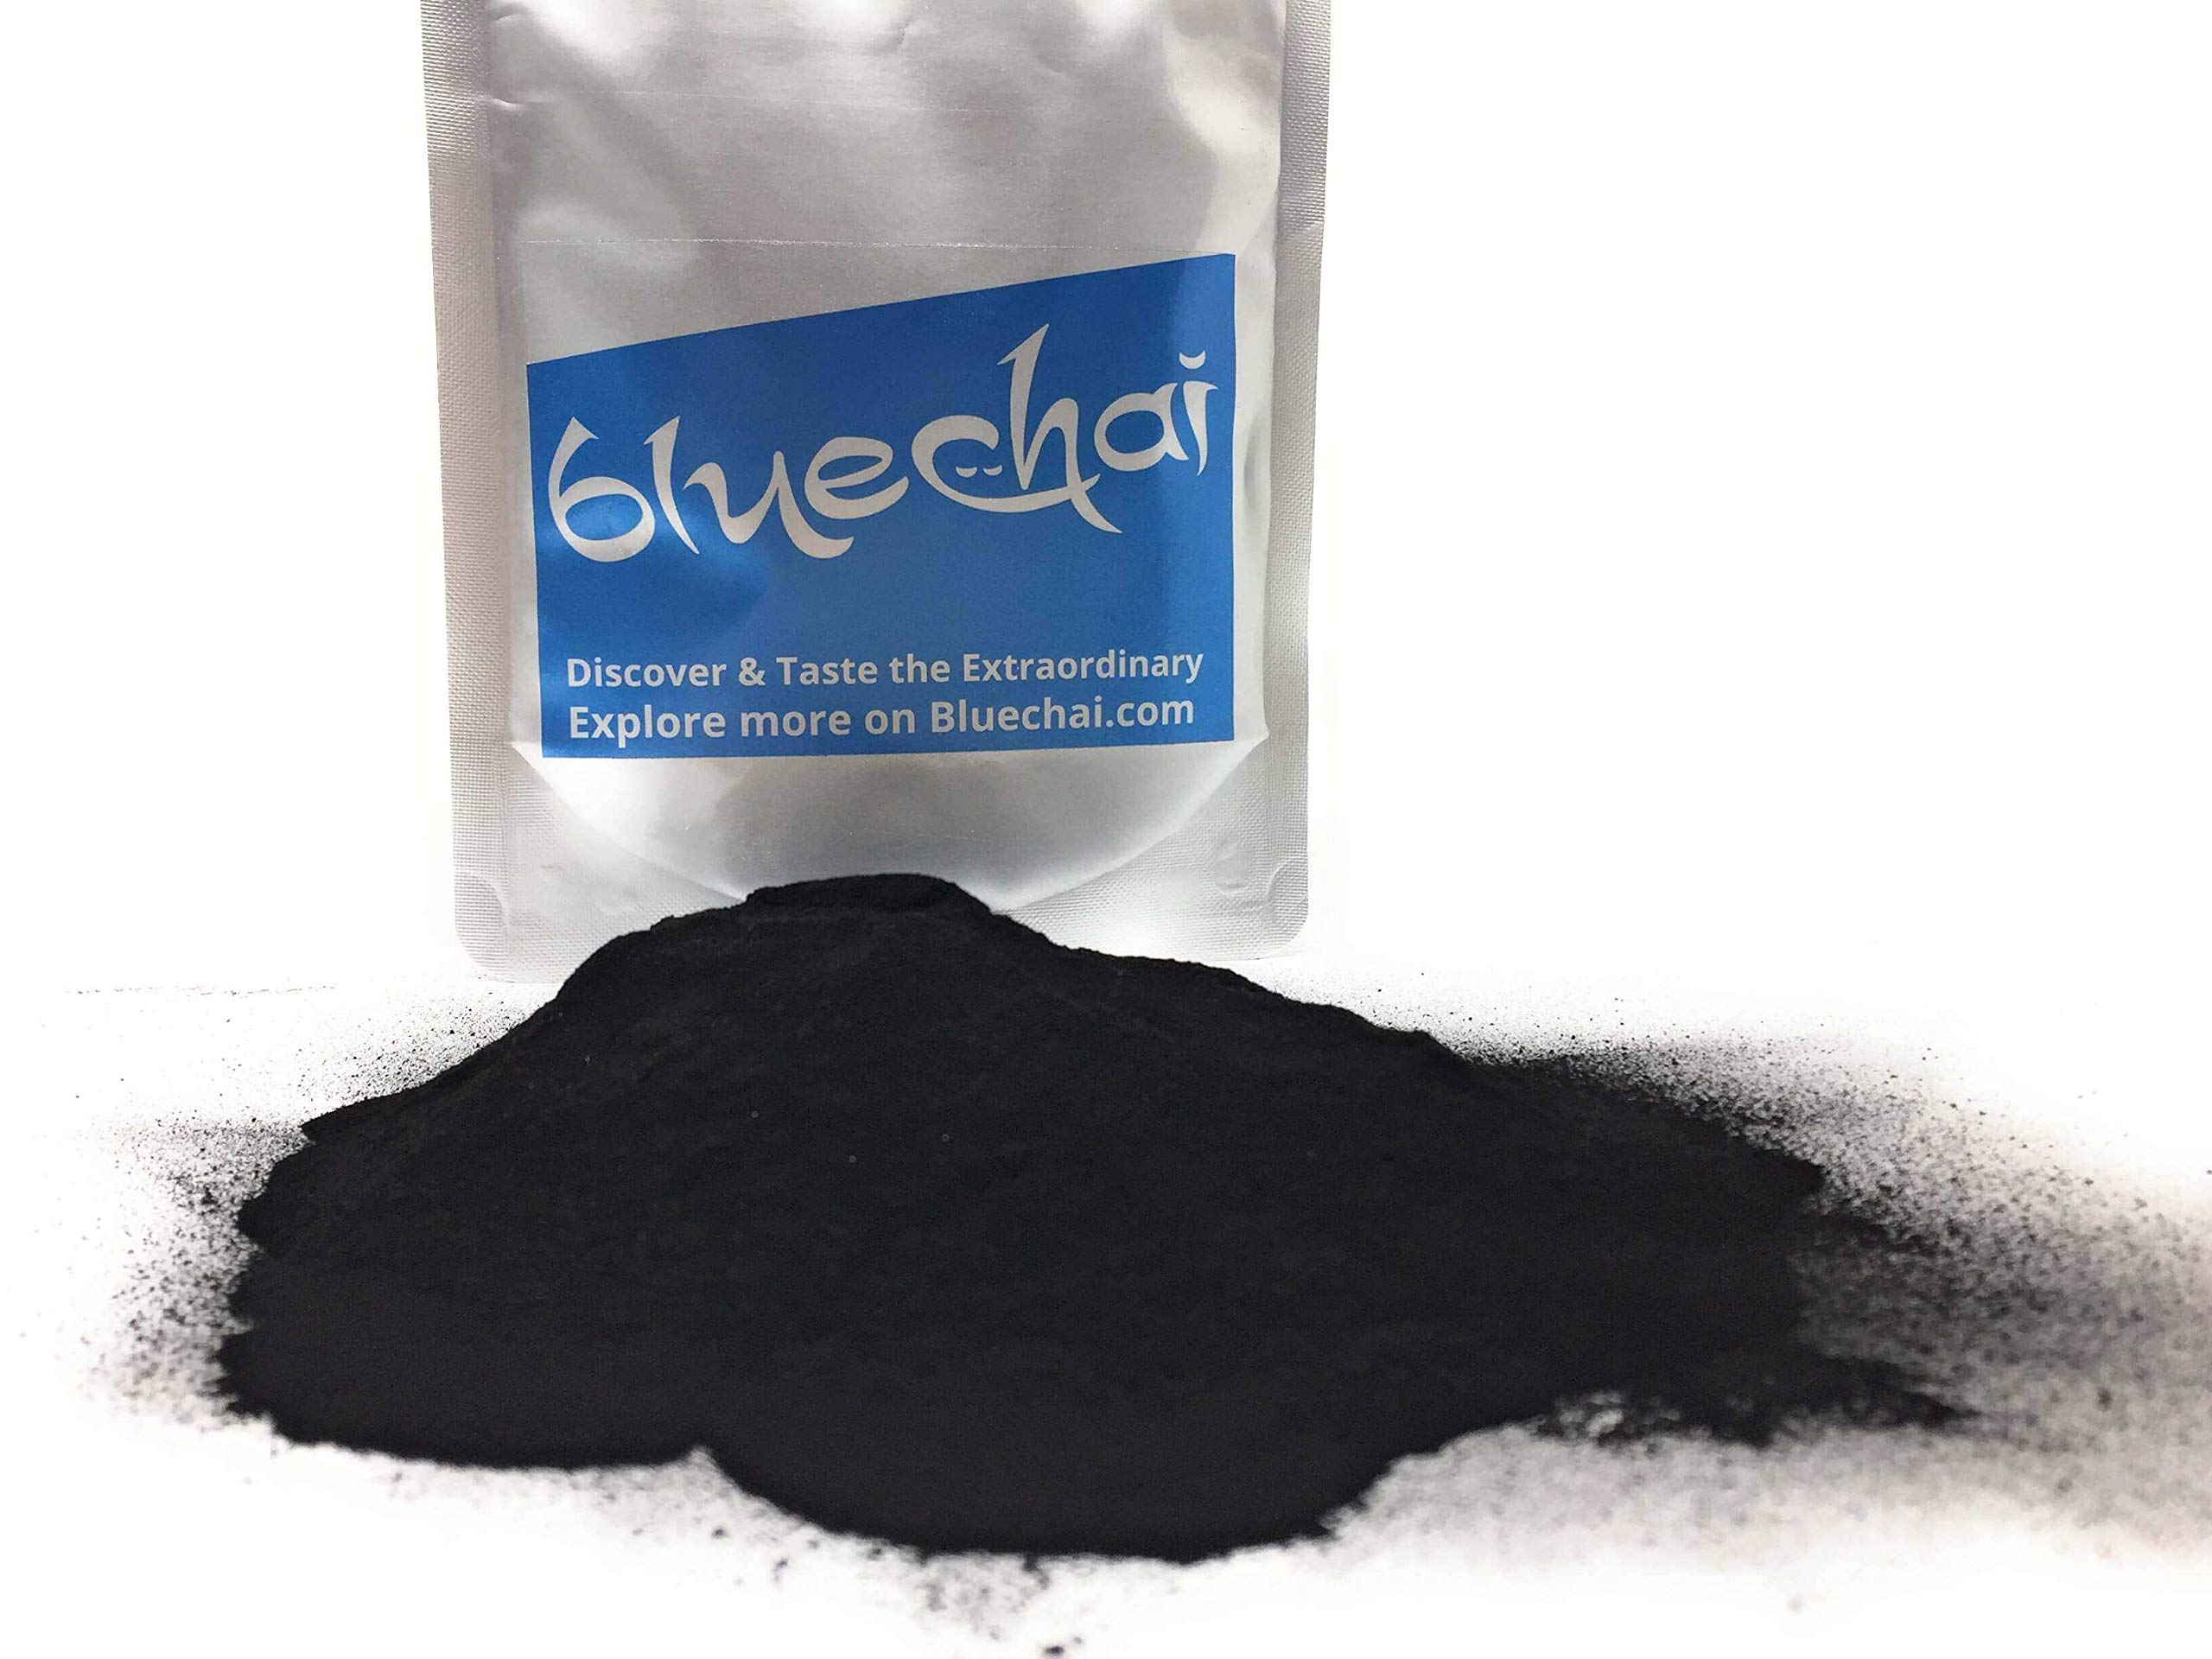 Ikasumi Black Squid Ink Powder - 100% Squid Cuttlefish Ink Powder | Pure, Rare, Natural, Powdered & Genuine Black Ink Ikasumi - Used as a natural black food coloring by Bluechai (Image #1)